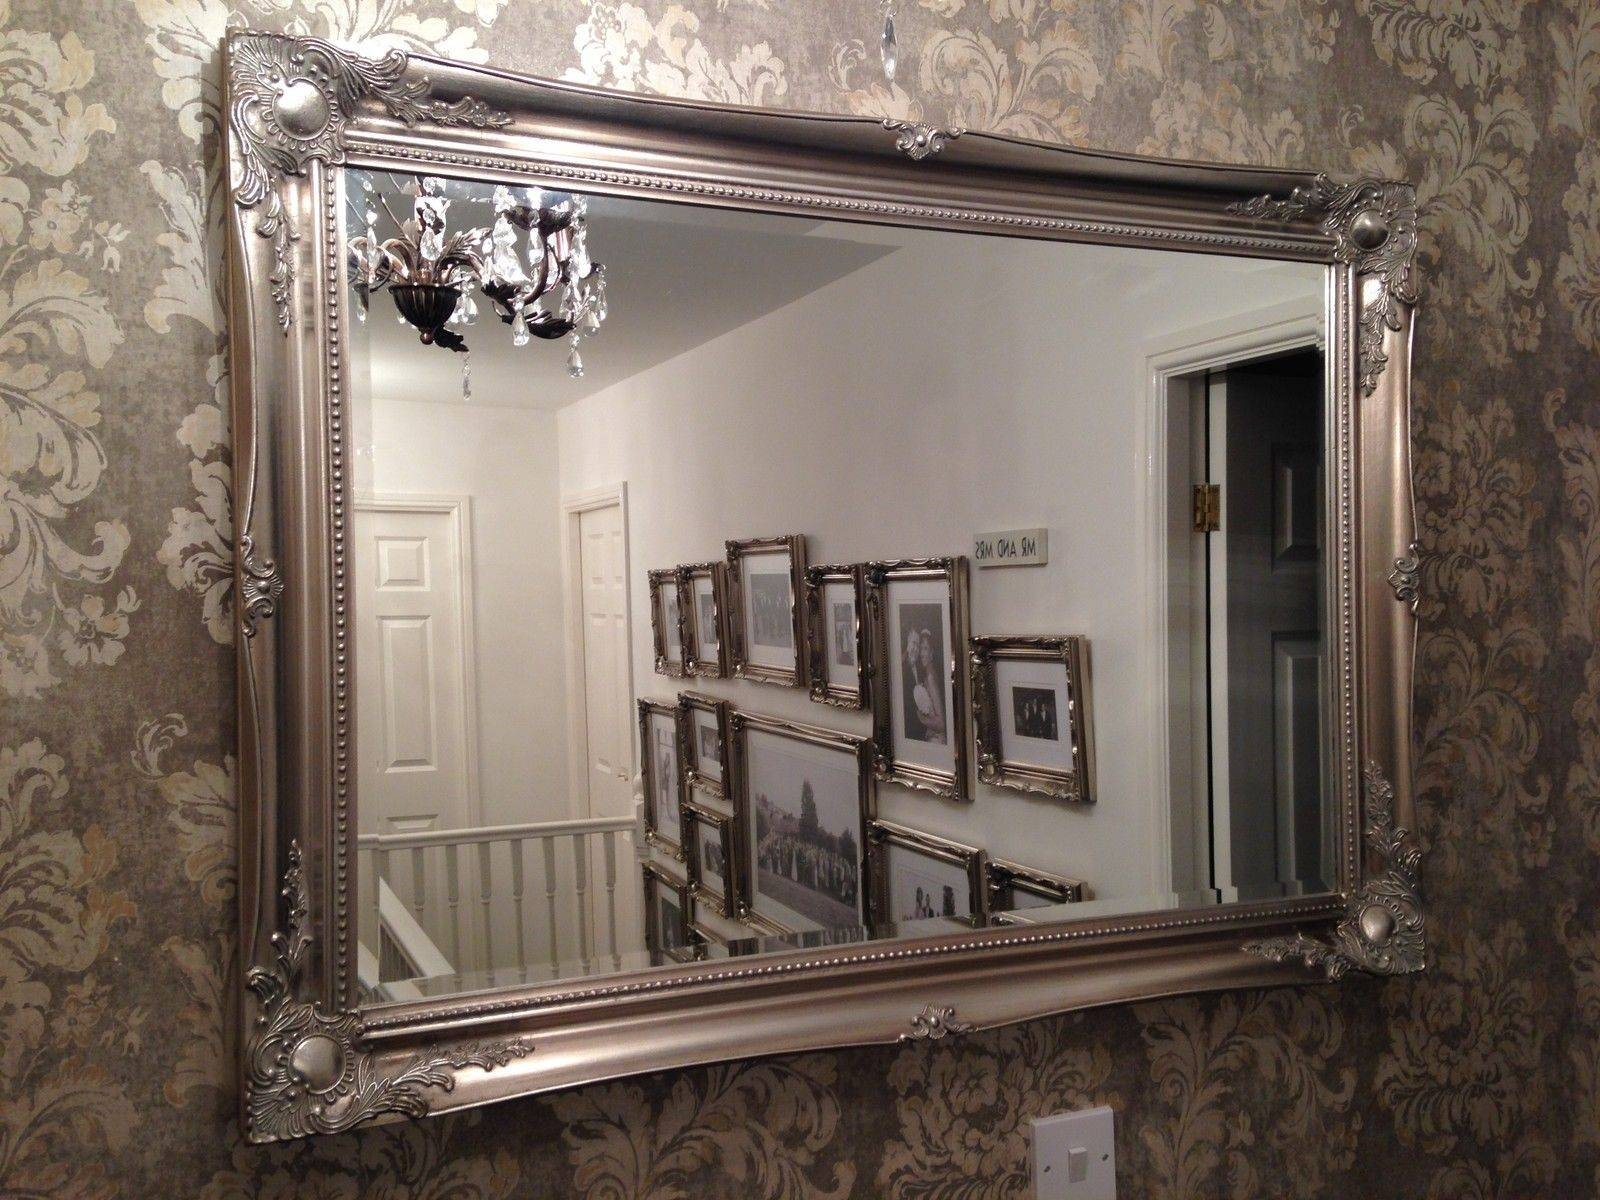 Large Antique Silver Shabby Chic Ornate Decorative Over Mantle throughout Large Overmantle Mirrors (Image 9 of 15)